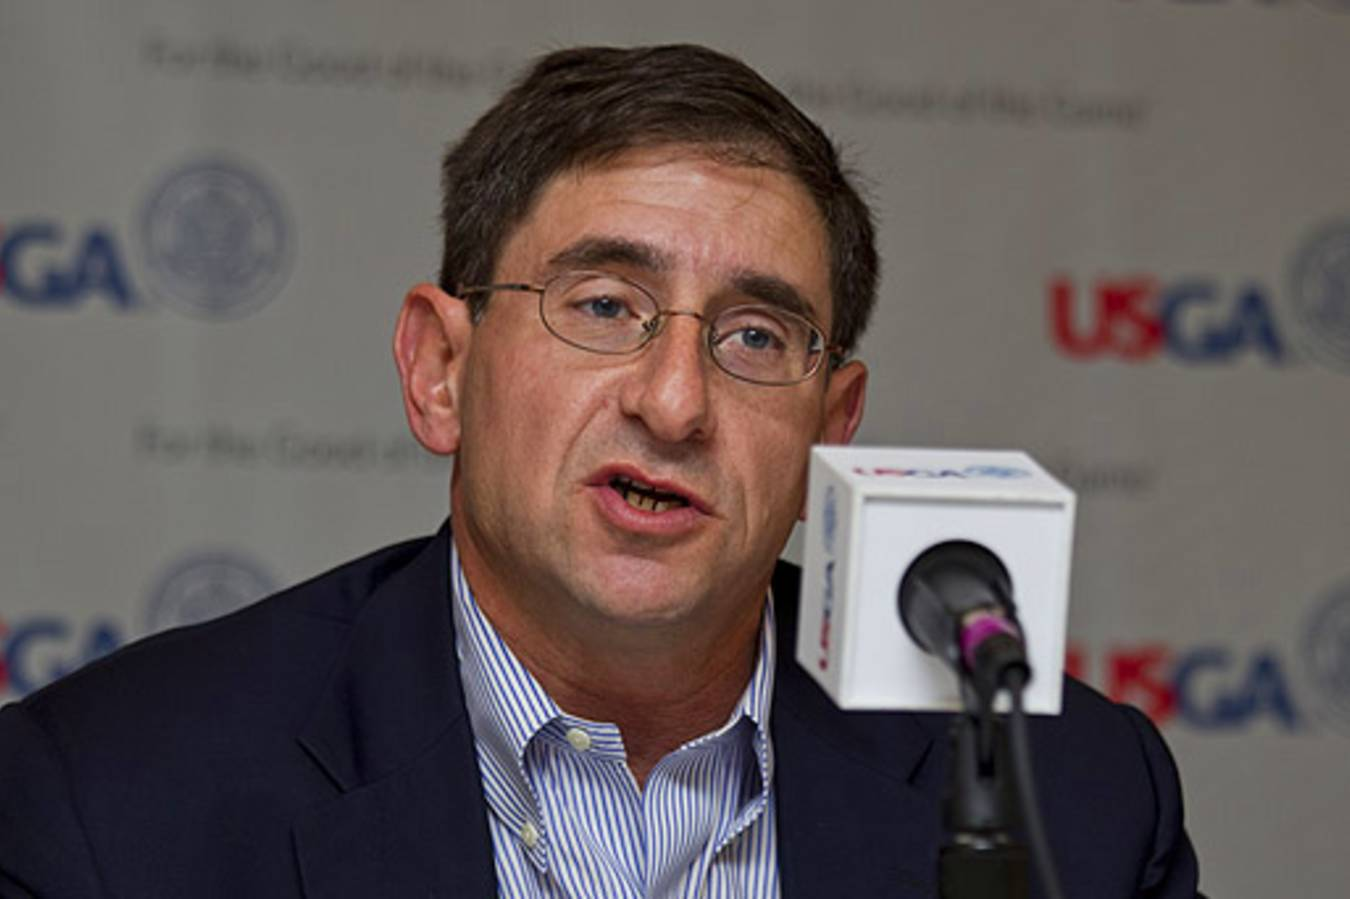 Nager Elected To Second One Year Term As USGA President e4af1b7643